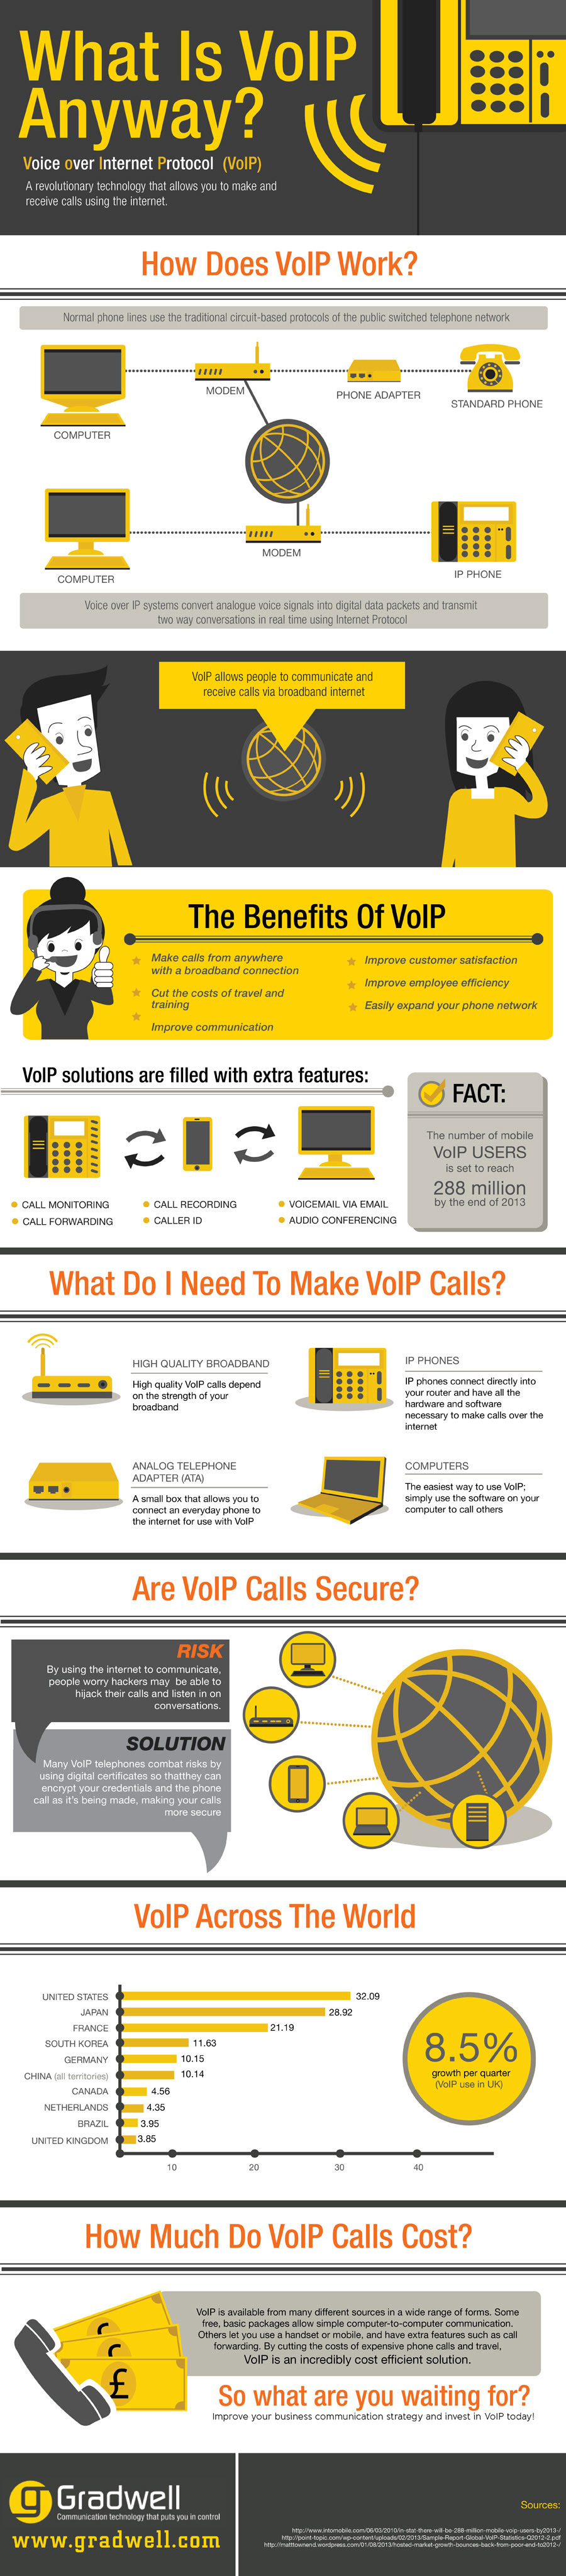 Infographic: What Is VoIP Anyway?